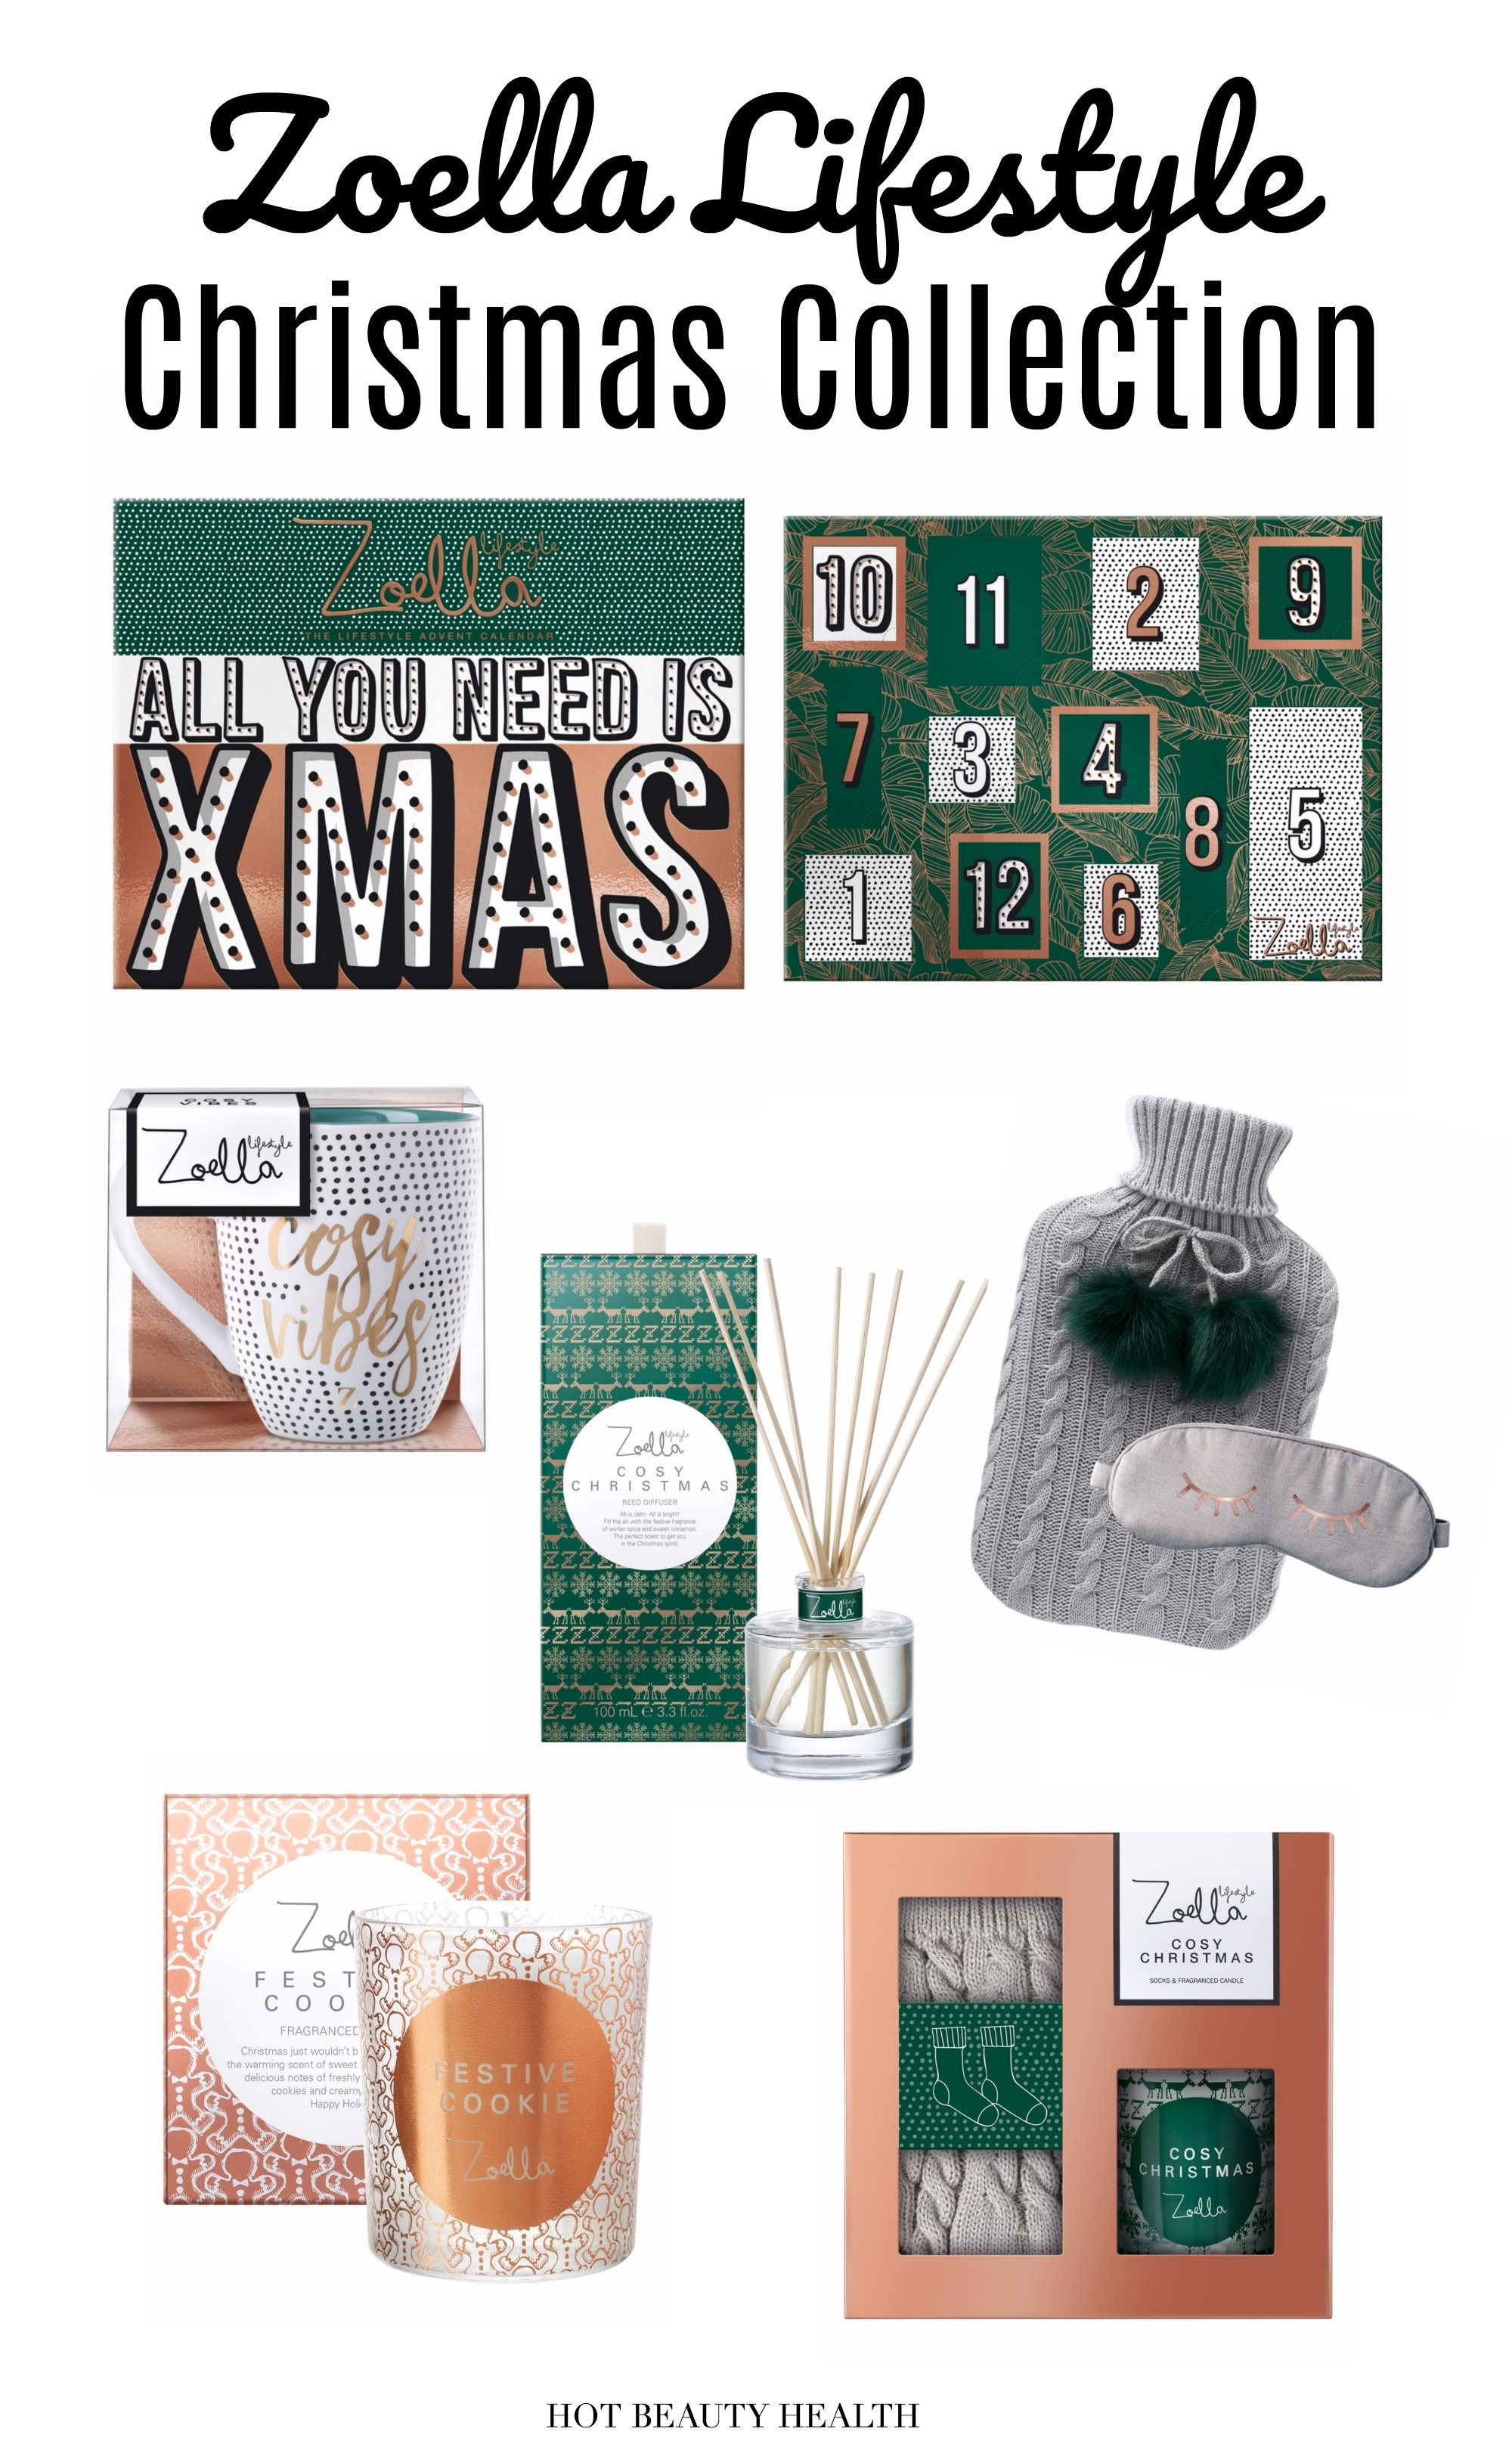 0ed3eccd97 Zoella Lifestyle Christmas Collection is So Dreamy   Hot Beauty ...